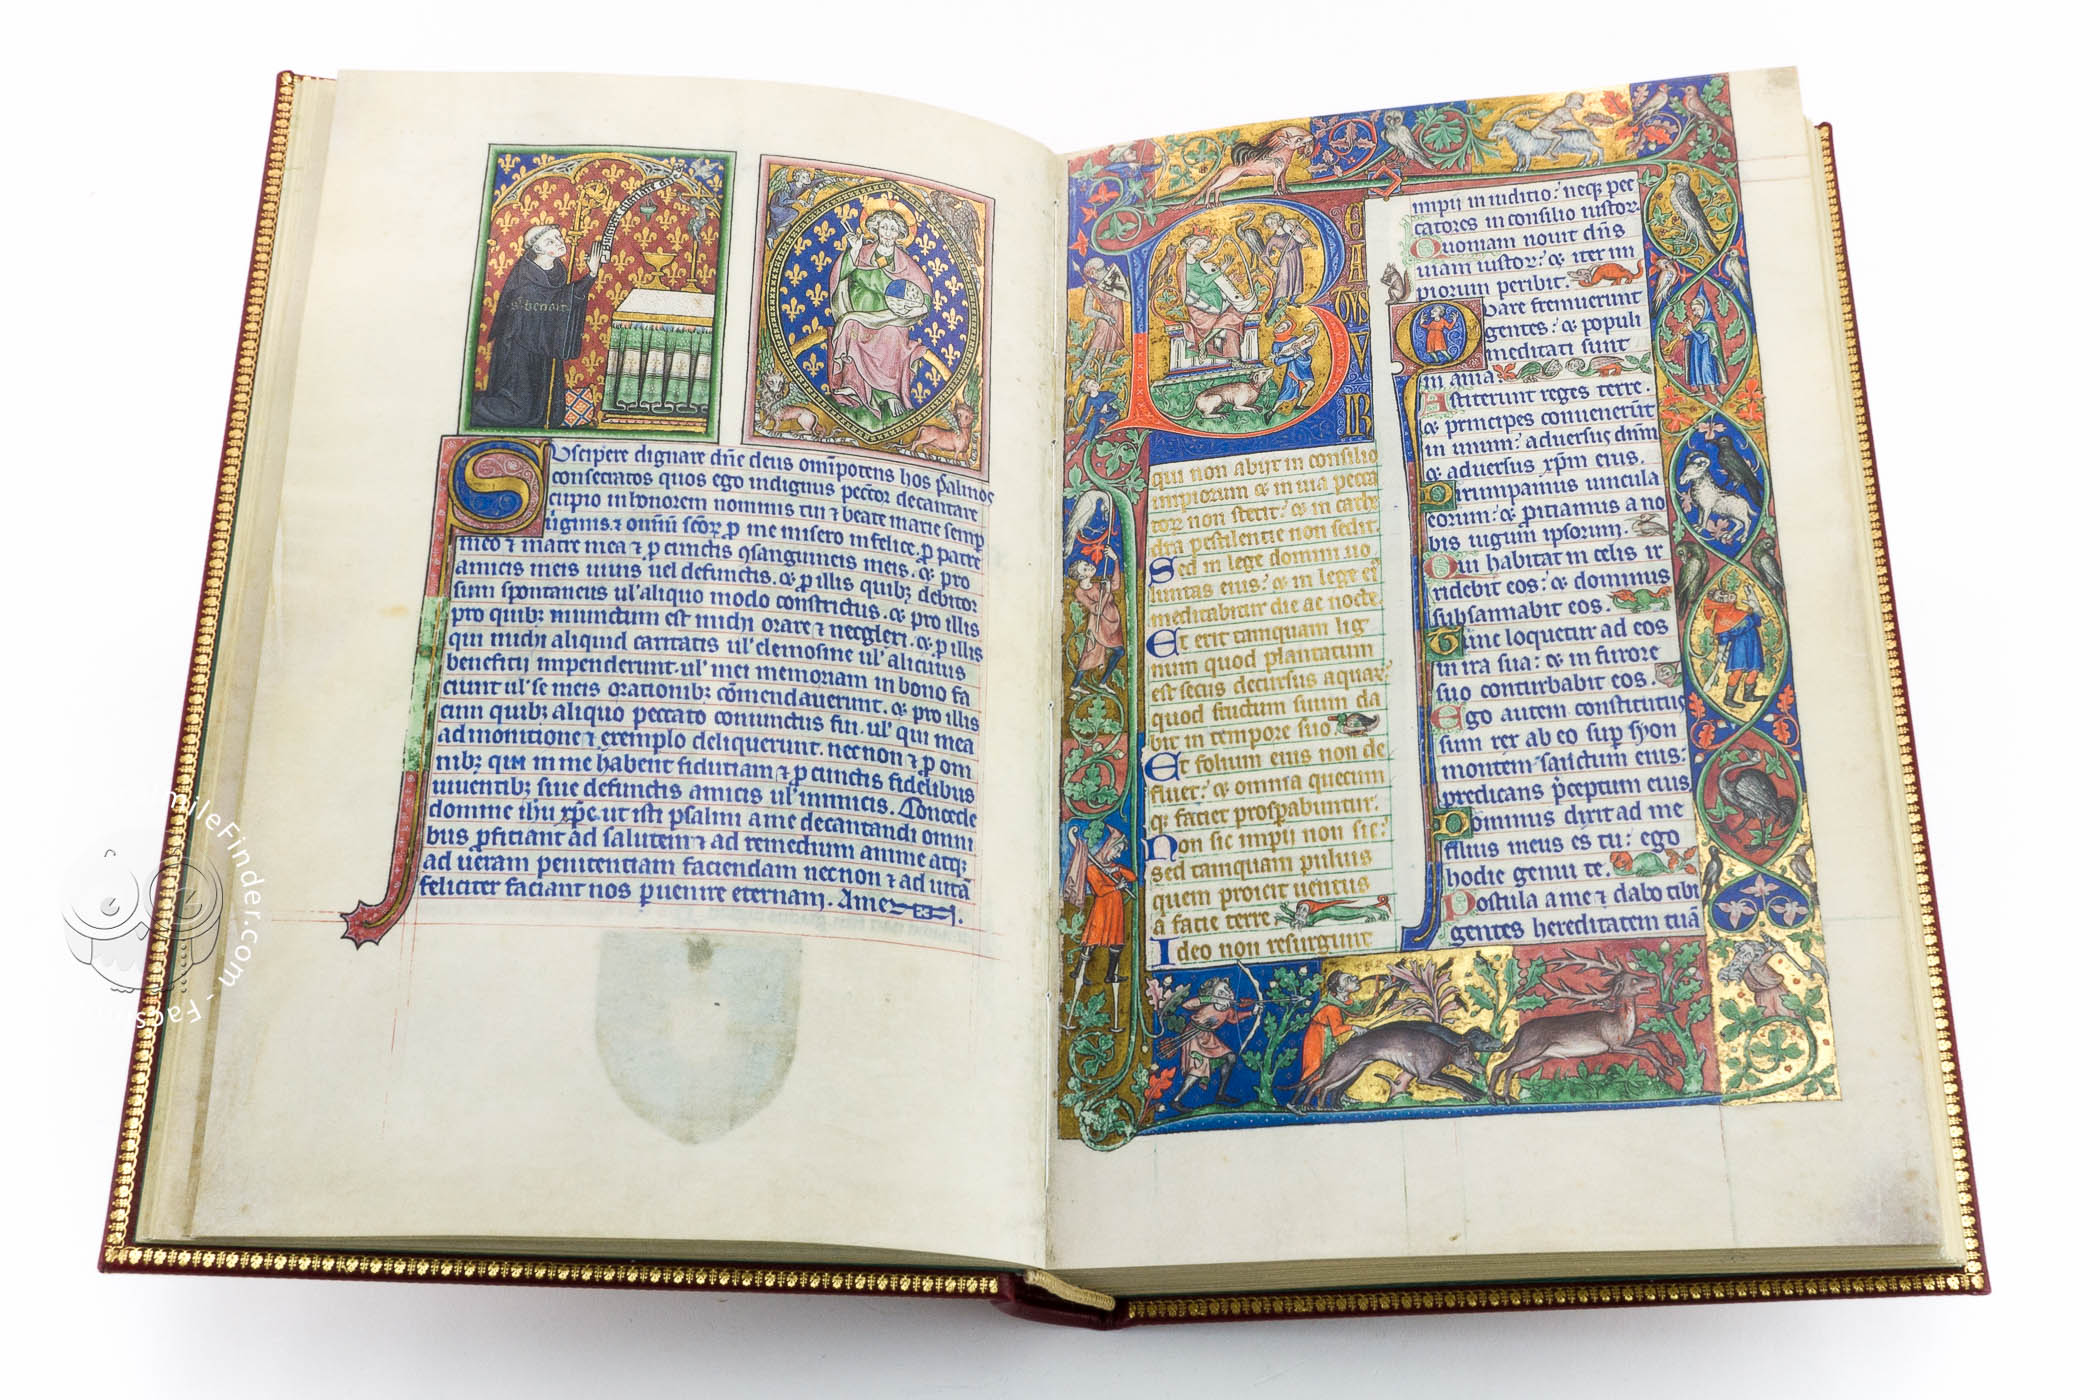 The Peterborough Psalter in Brussels facsimile edition